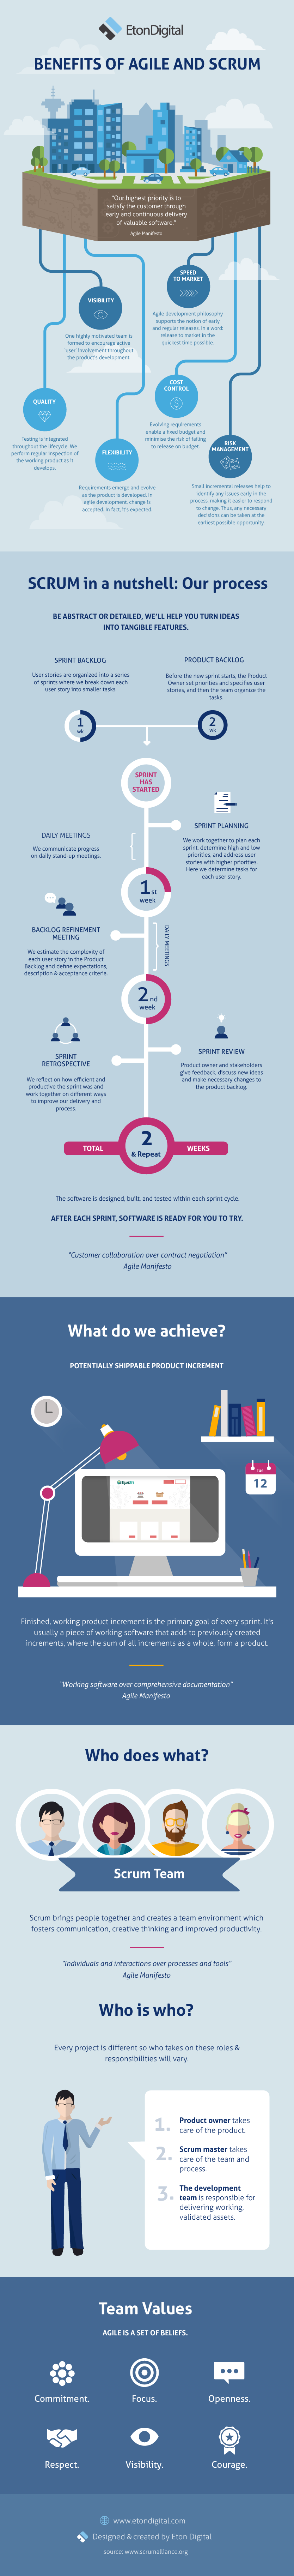 Benefits of Agile and Scrum Infographic